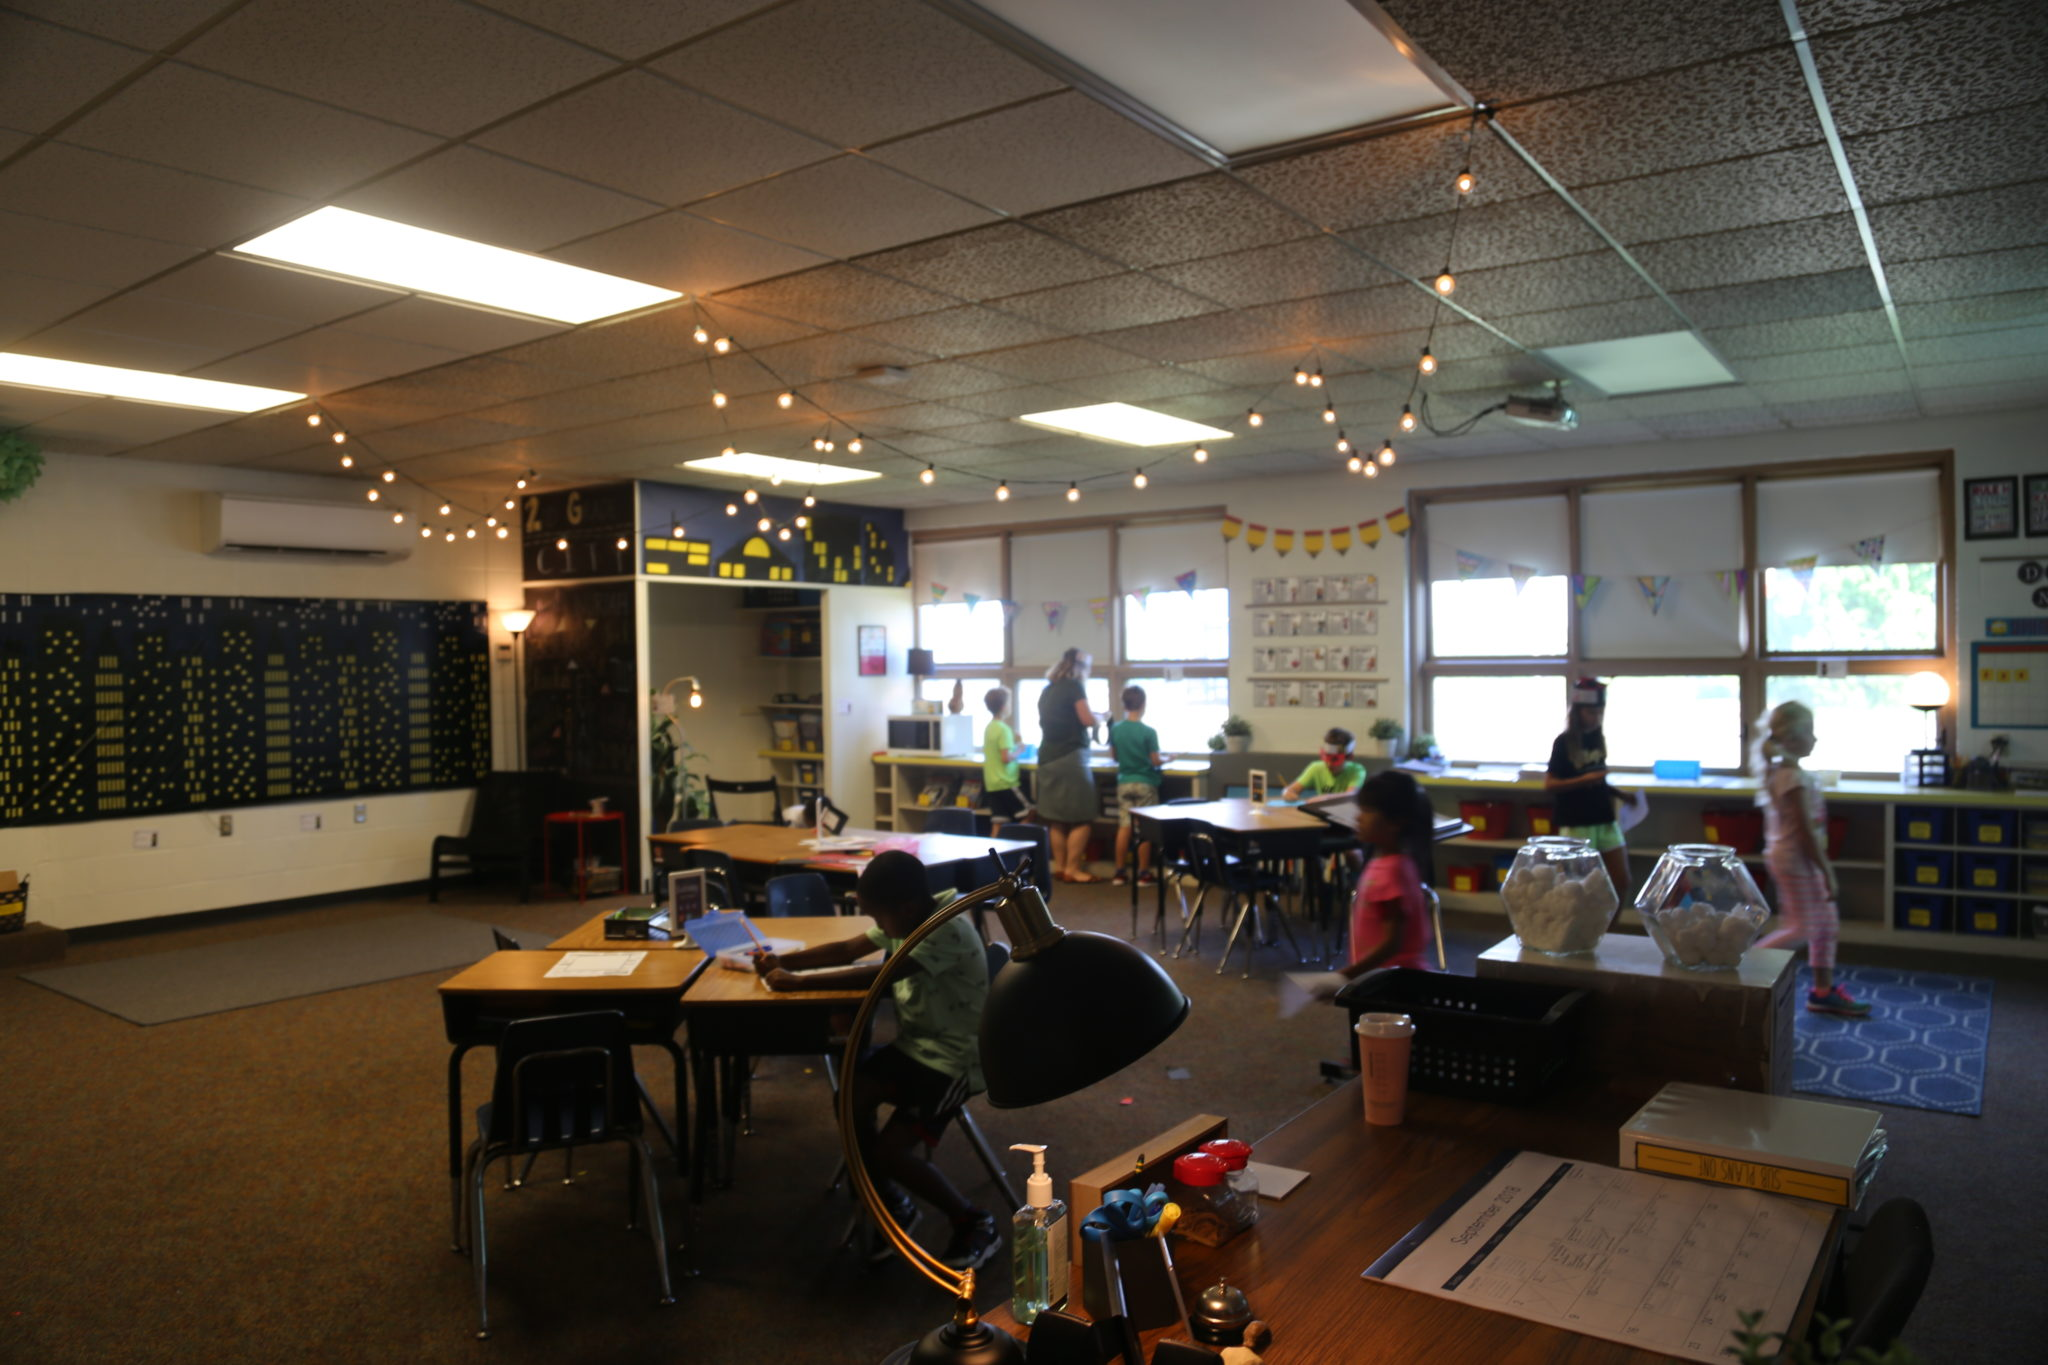 students working together in classroom